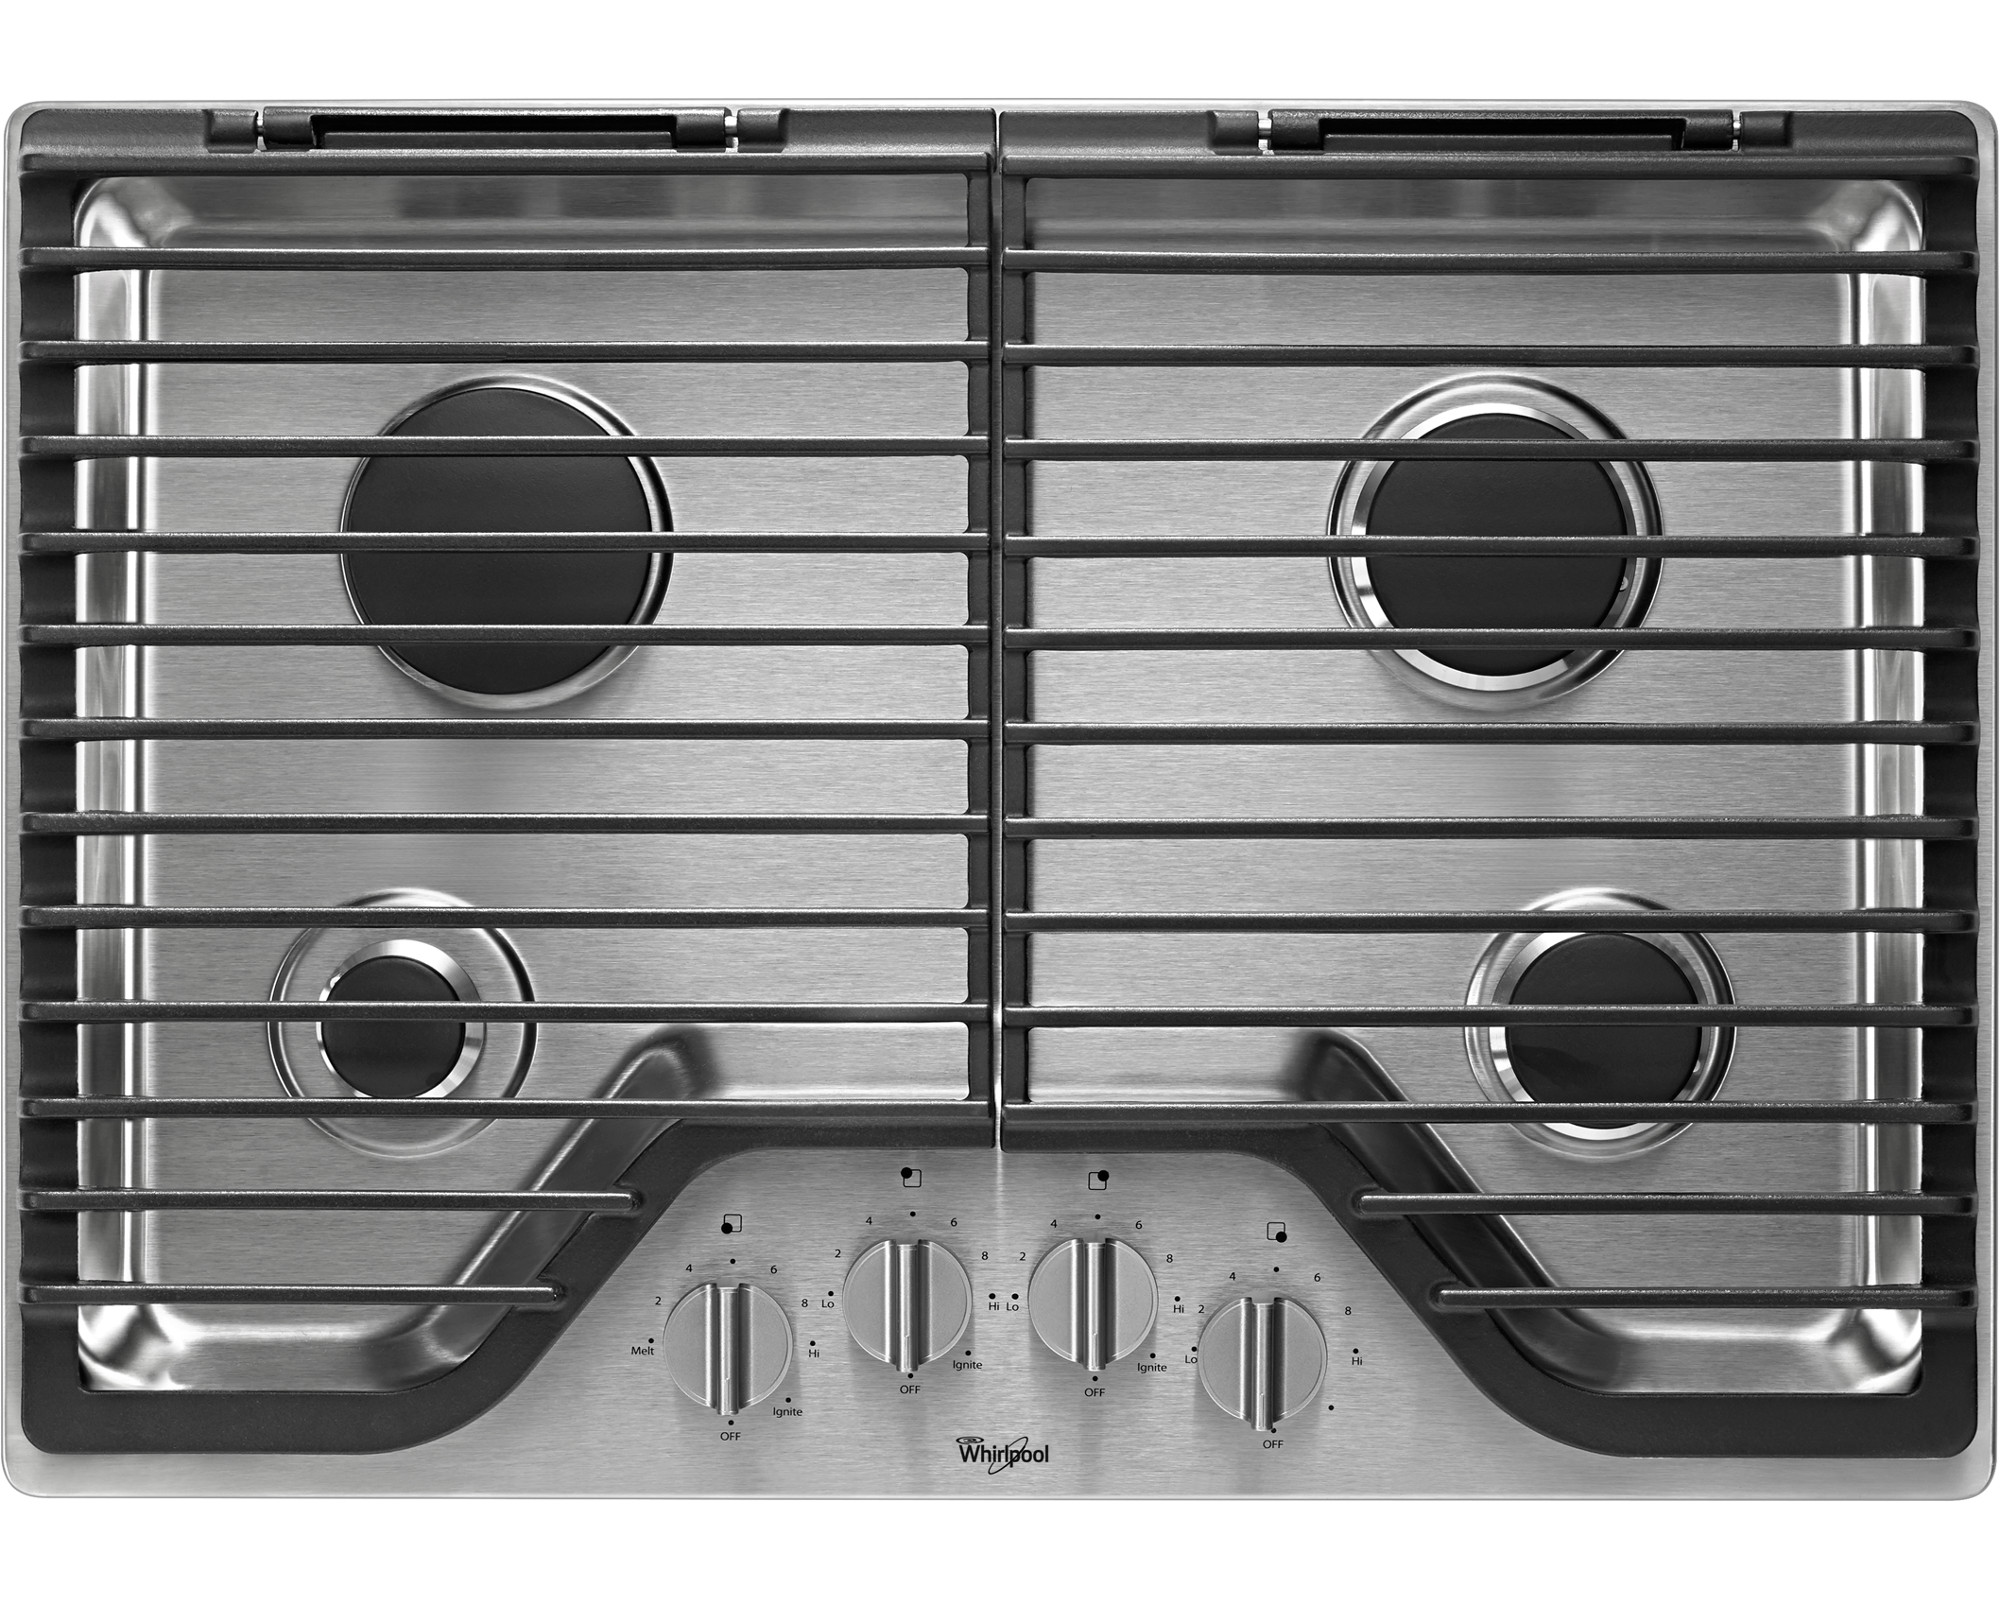 30-Gas-Cooktop-w-Stainless-Steel-Finish-Knobs-Stainless-Steel